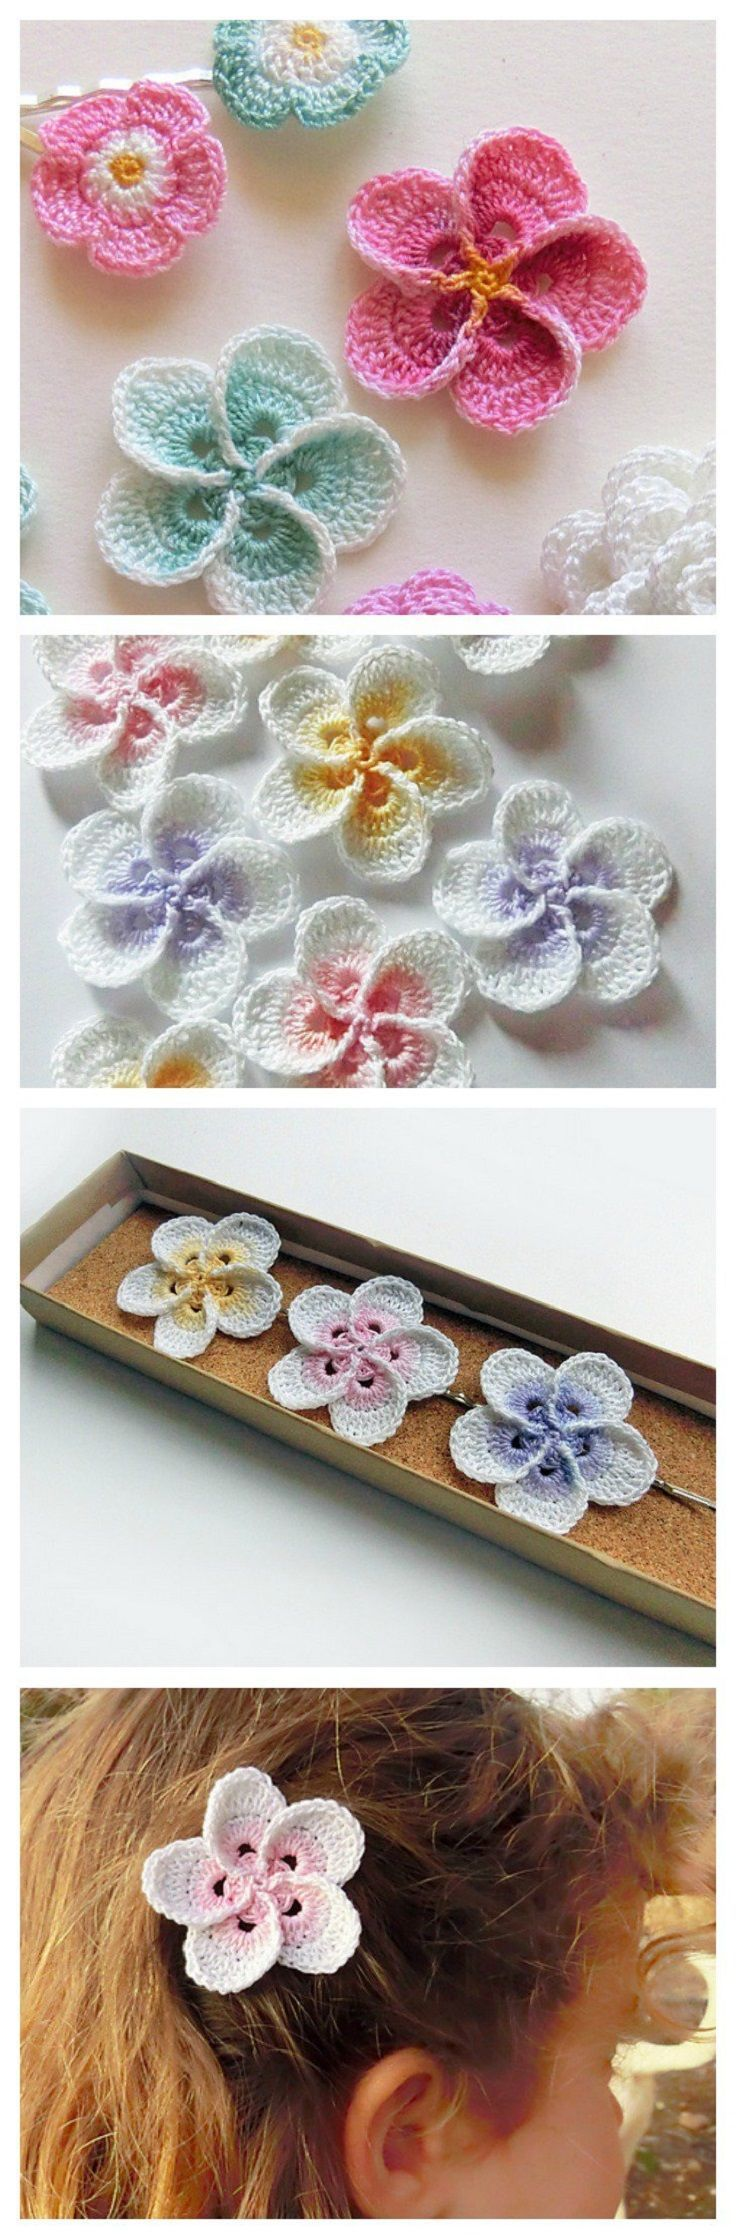 Best 300+ Crochet images on Pinterest | Appliques, Crochet stitches ...